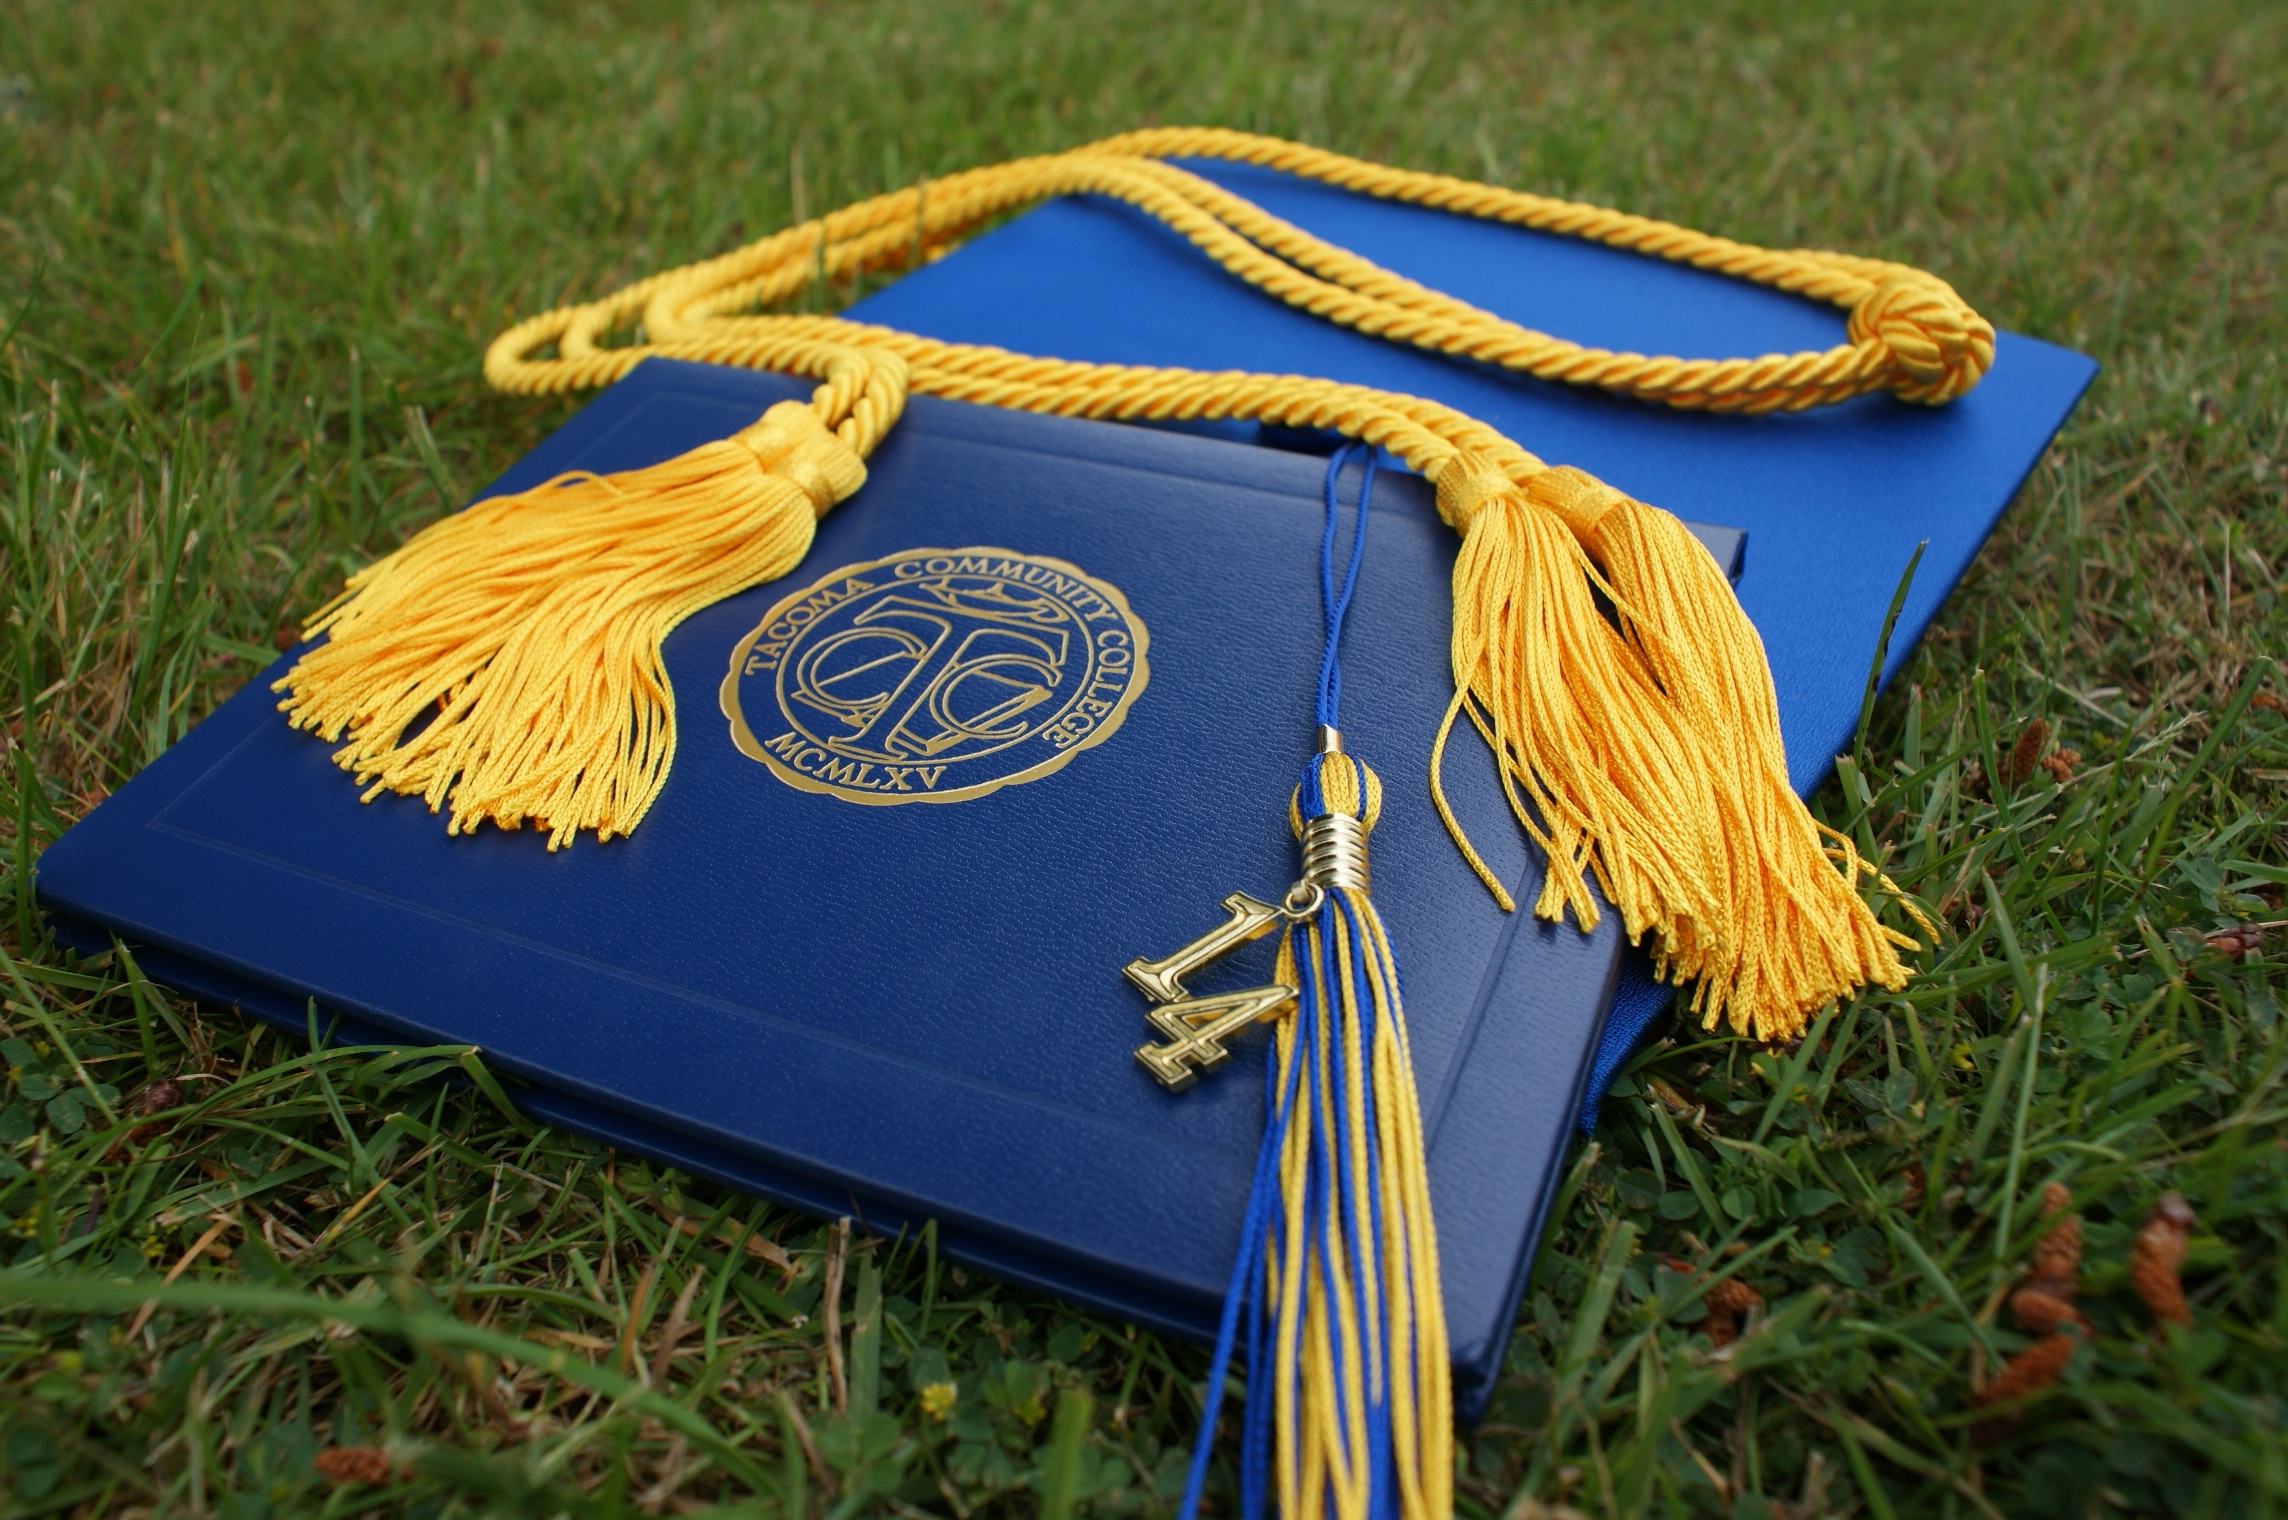 College graduation cap and diploma